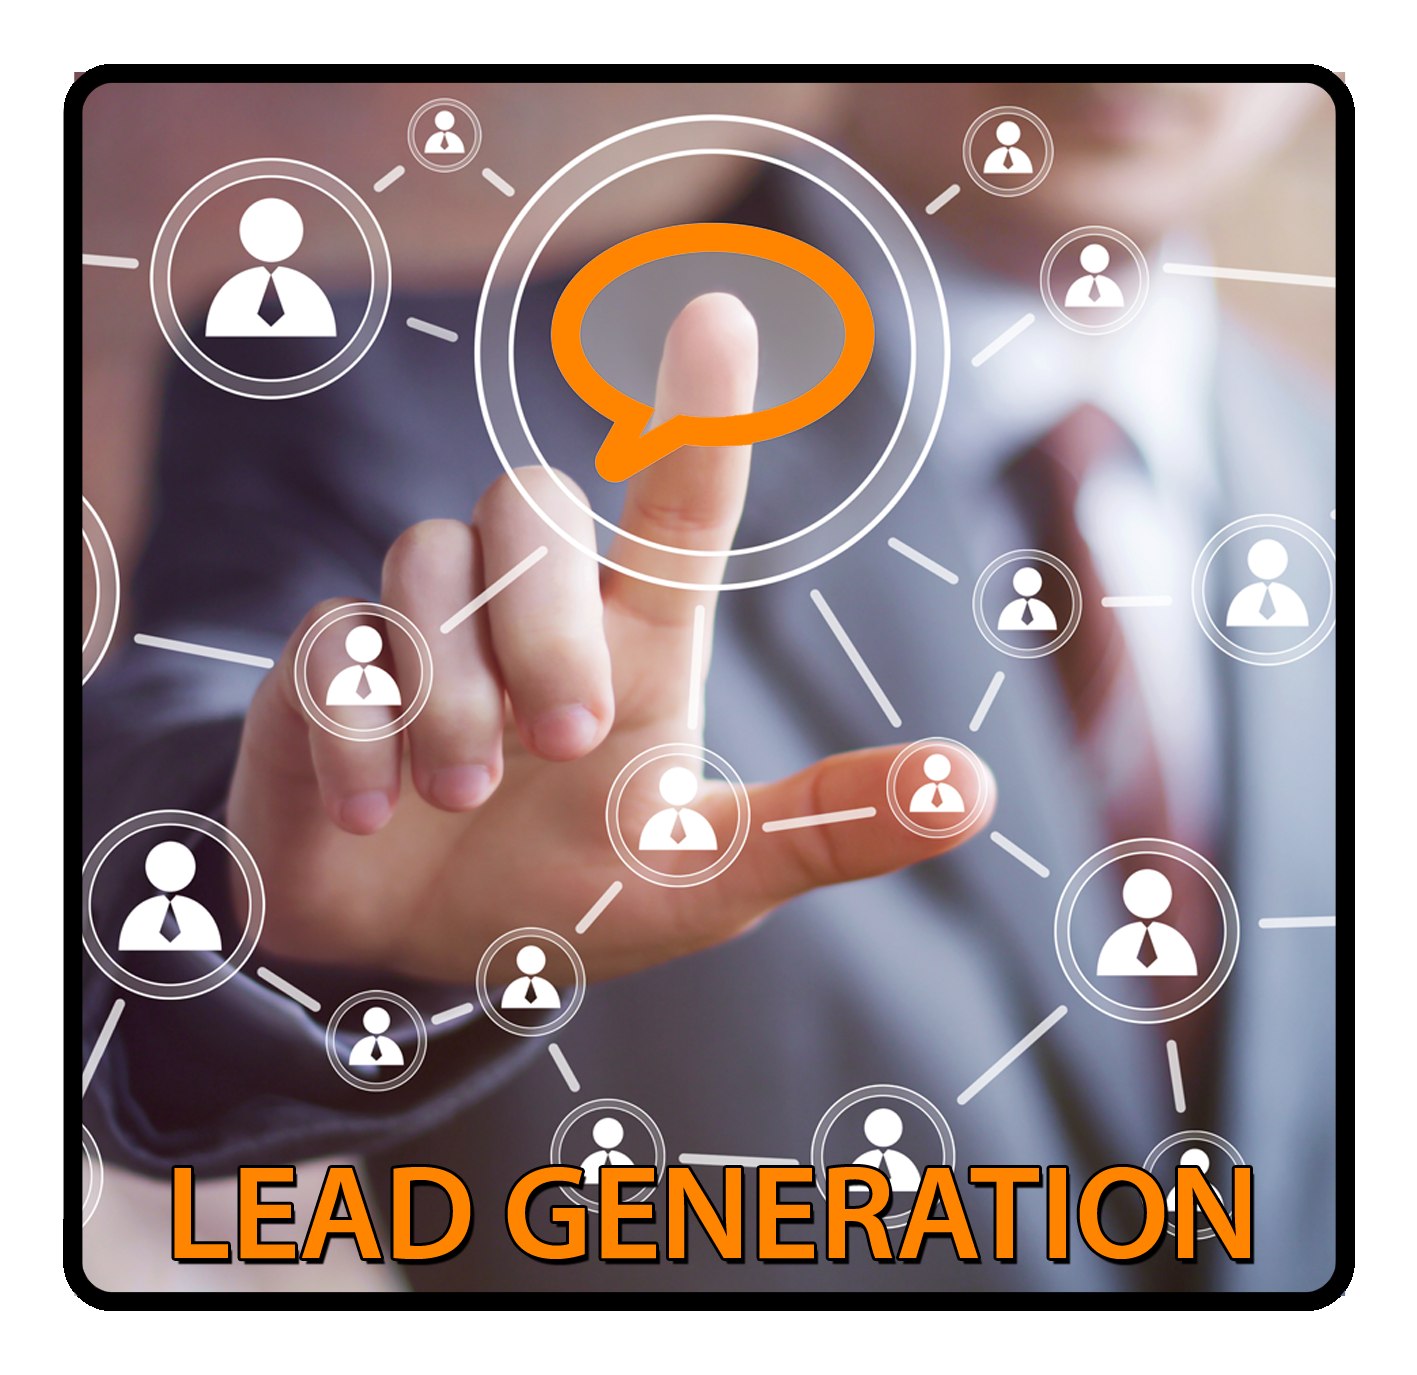 Launch of a New Video and Social Marketing Lead Generation ... - photo#28